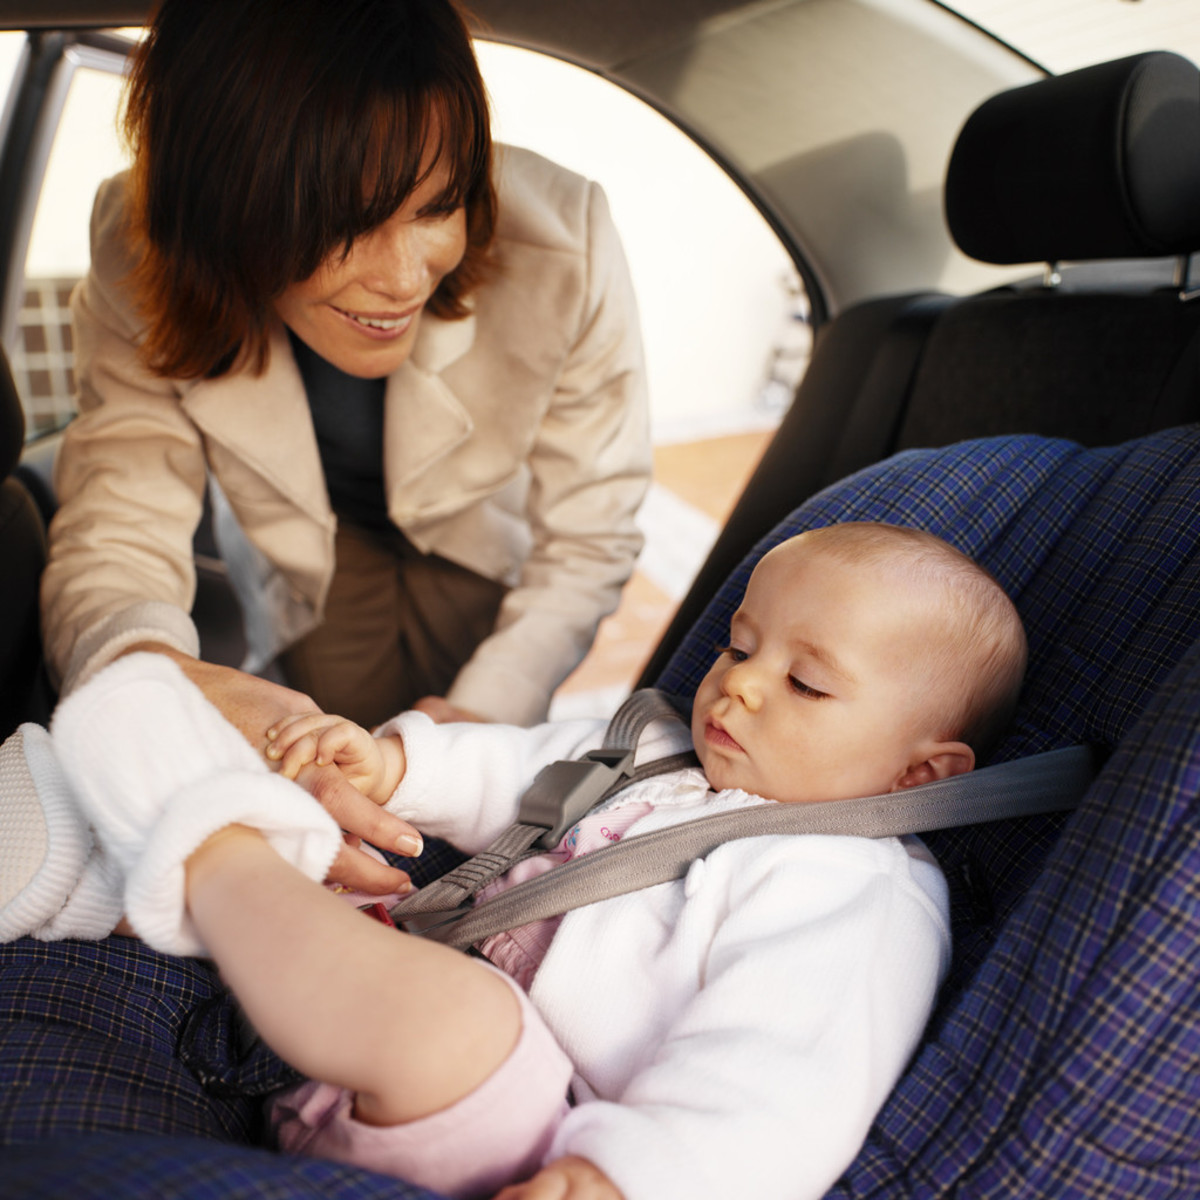 How long does a child need a car seat or booster seat? Why are they so important?